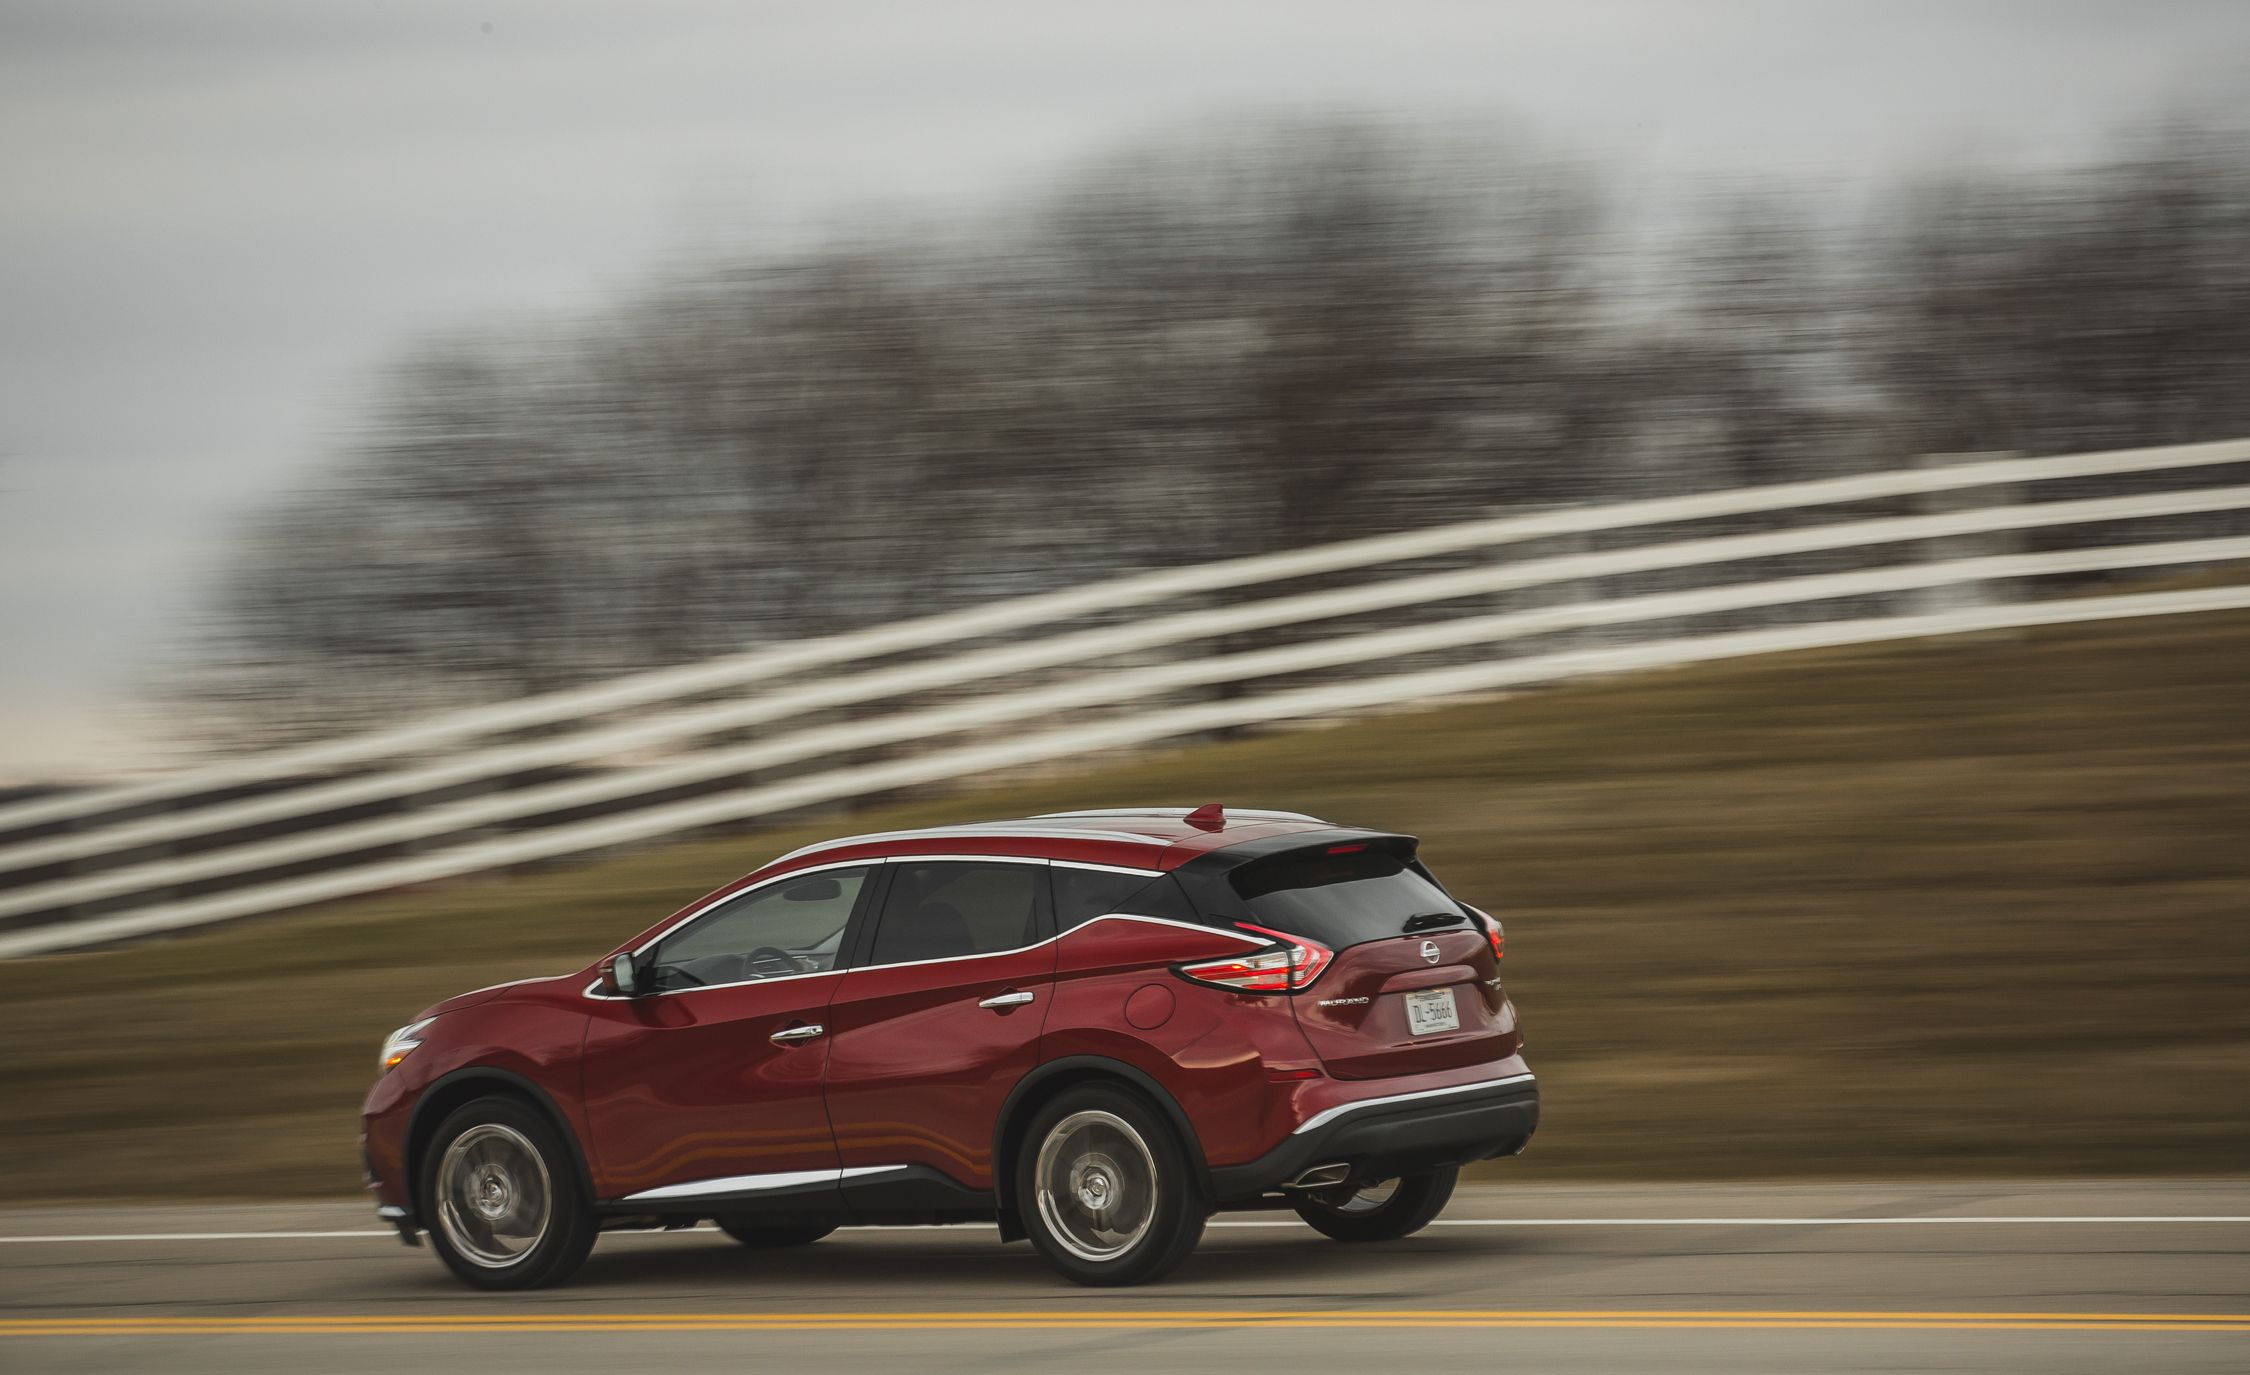 2018 Nissan Murano Fuel Economy And Driving Range Review